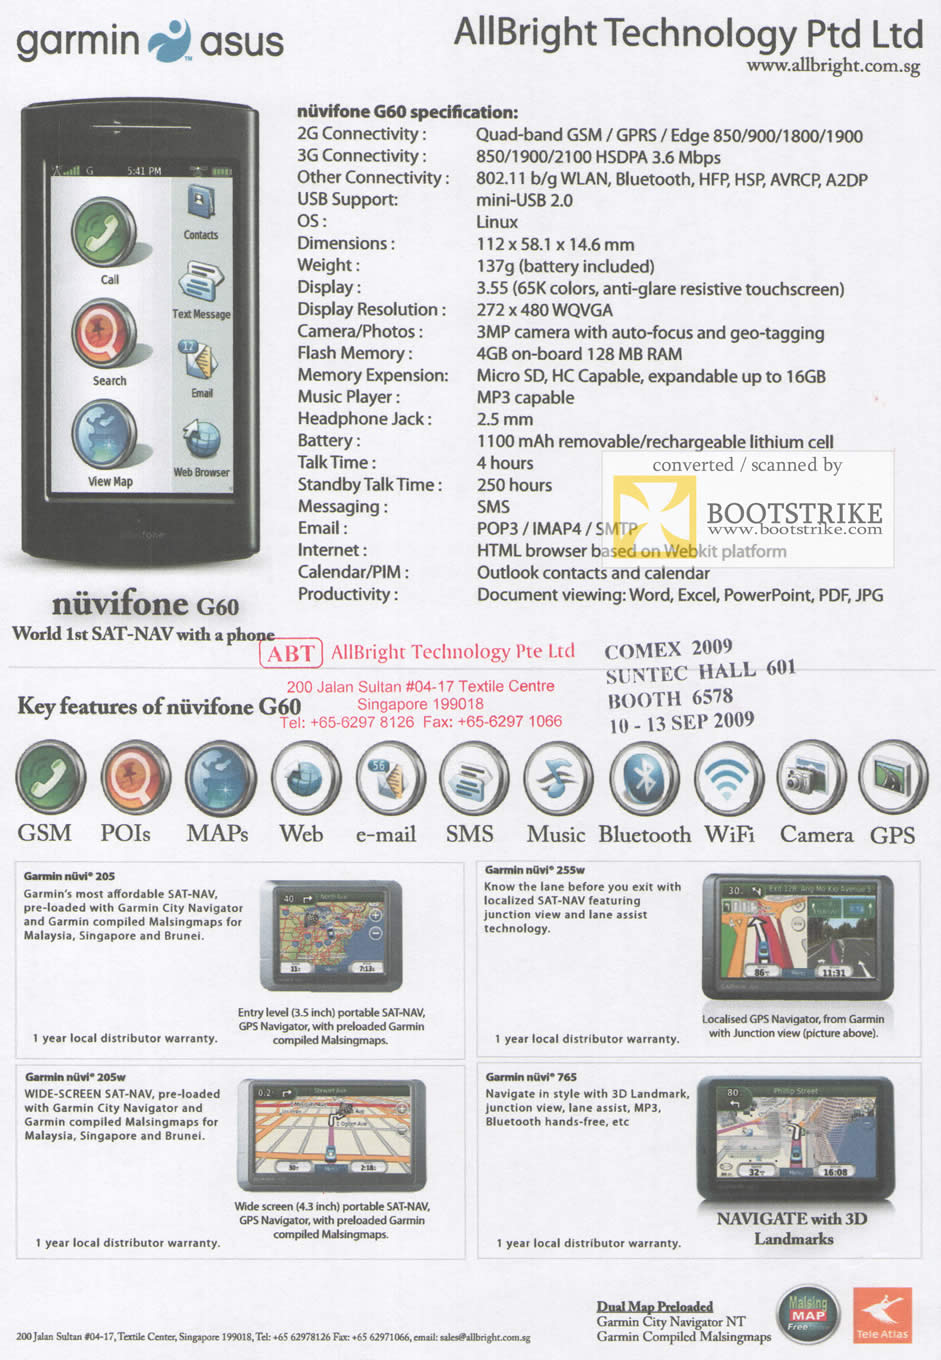 Comex 2009 price list image brochure of Garmin ASUS Nuvifone G60 205 205w 255w 765